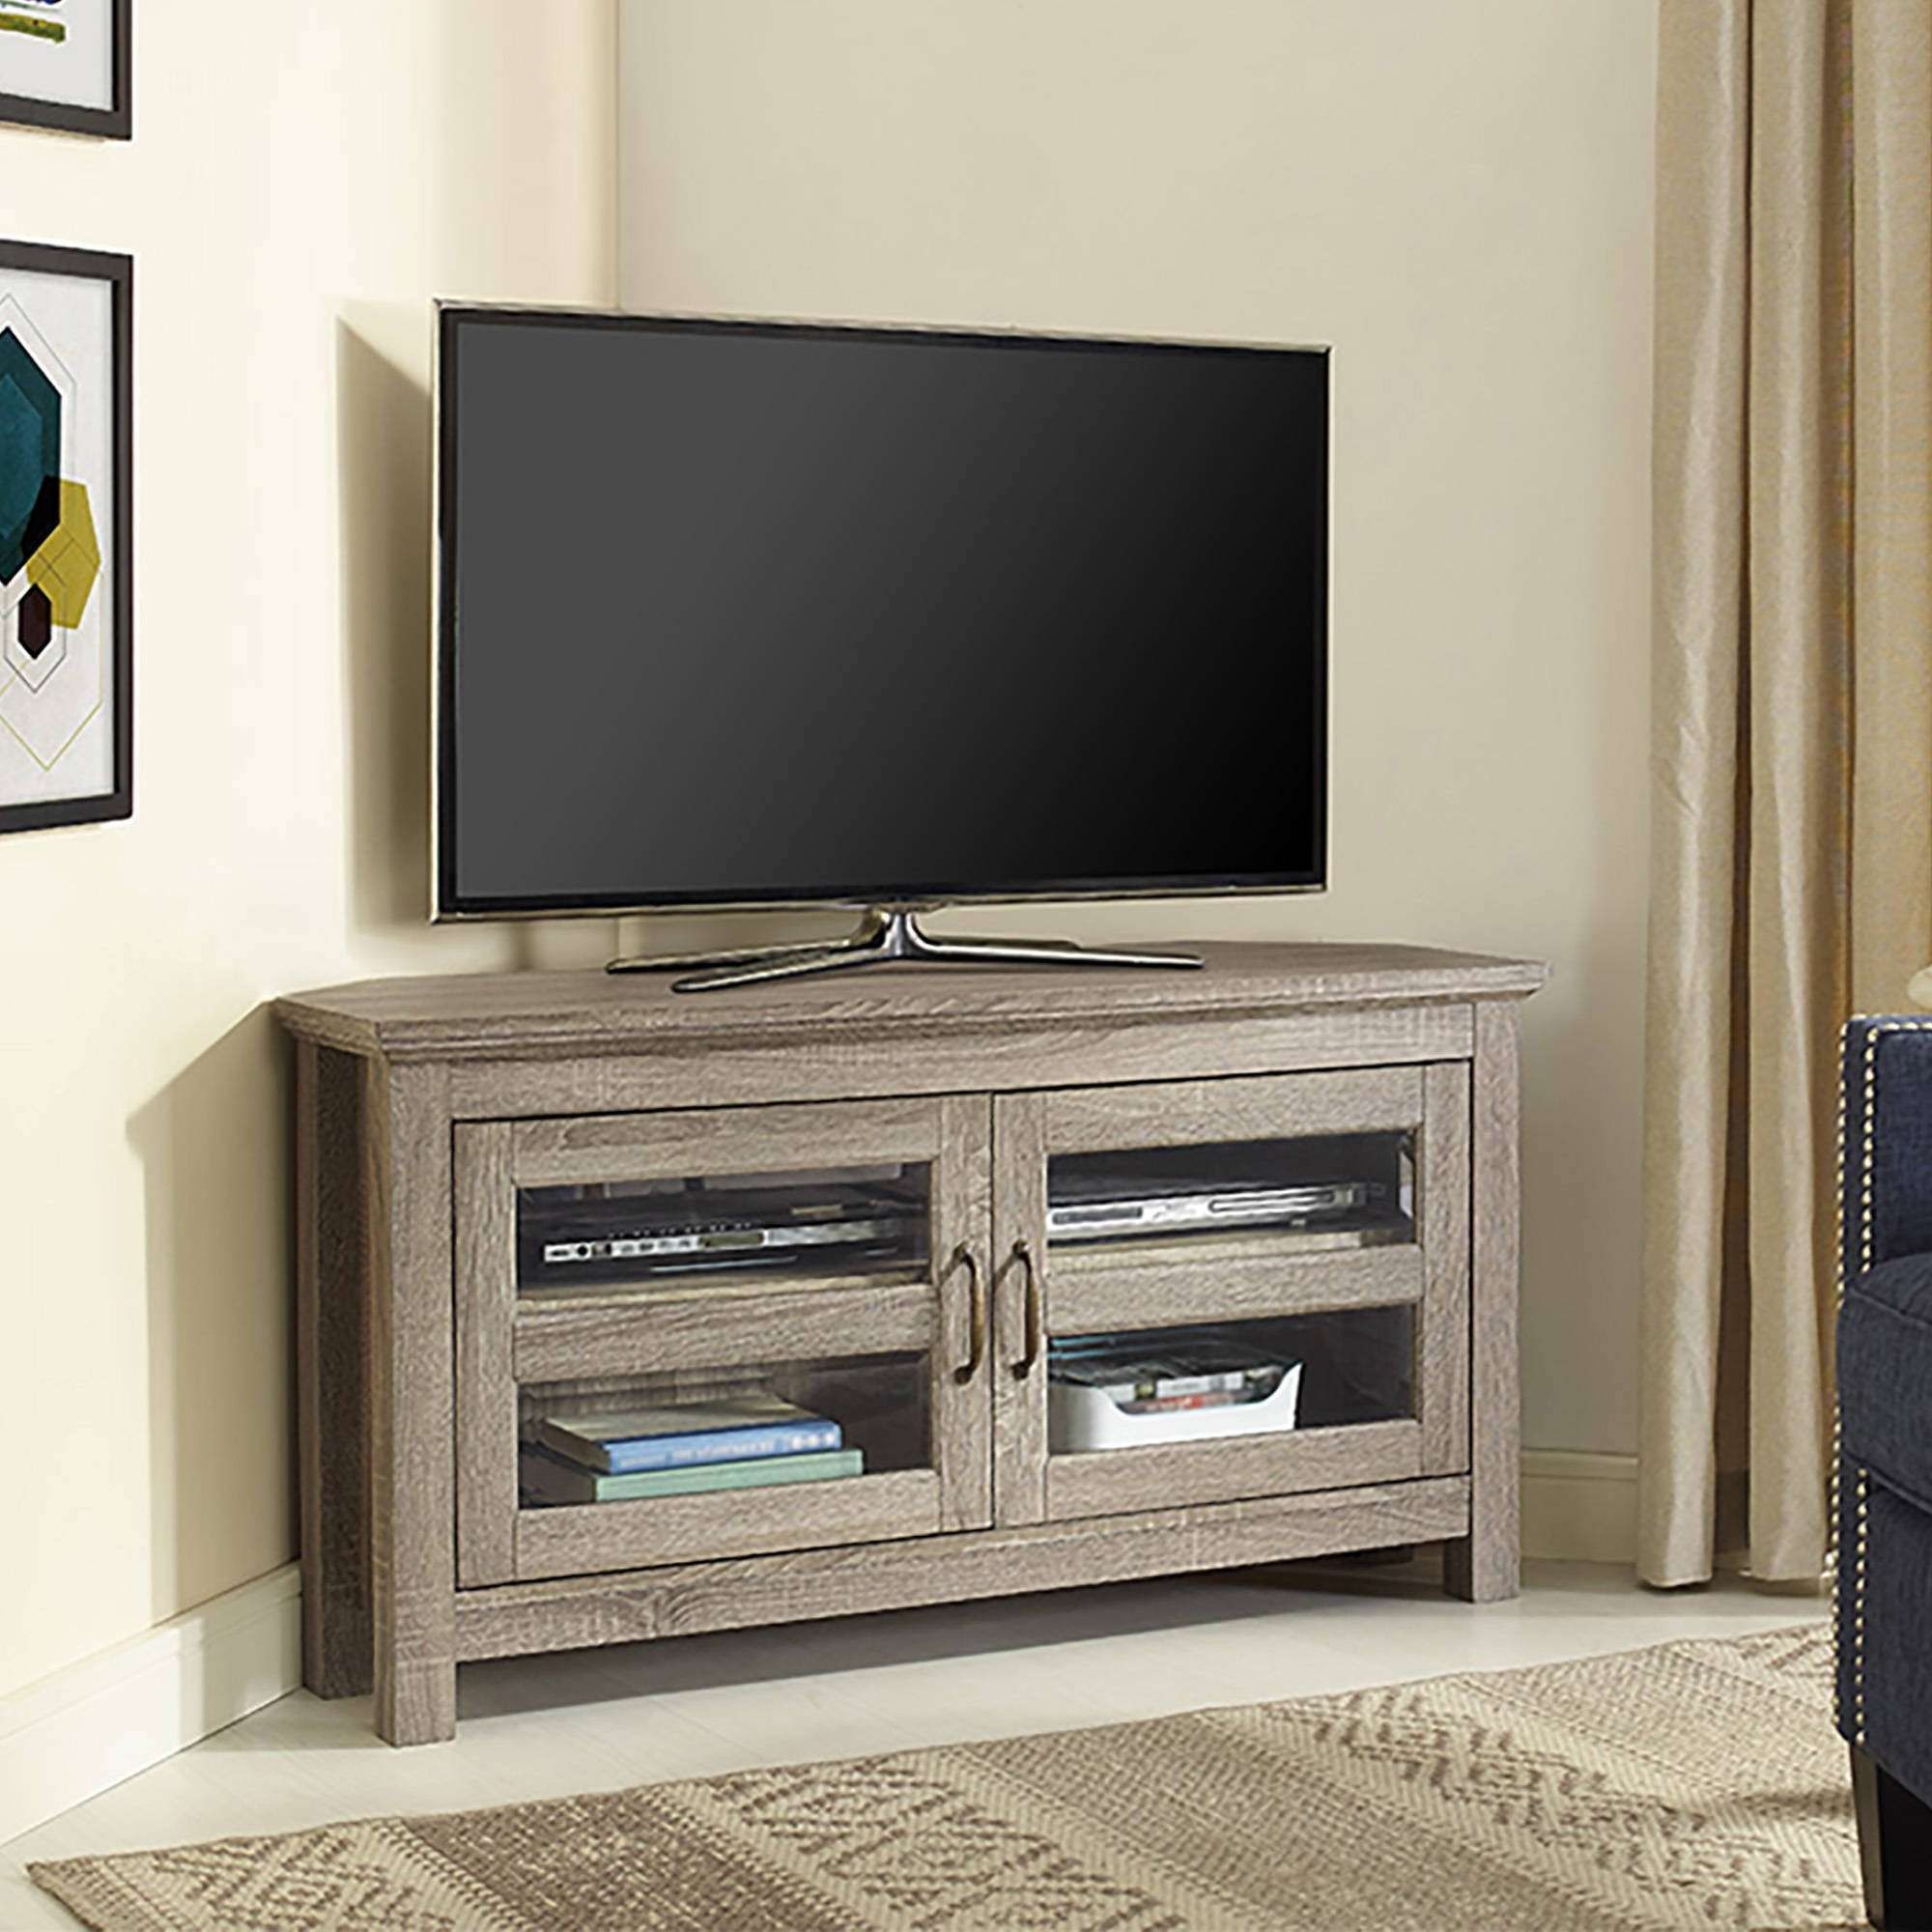 Tv : Gratifying Corner Tv Stands 40 Inch Flat Screen Top 40 Inch Regarding Corner Tv Stands 40 Inch (View 3 of 20)